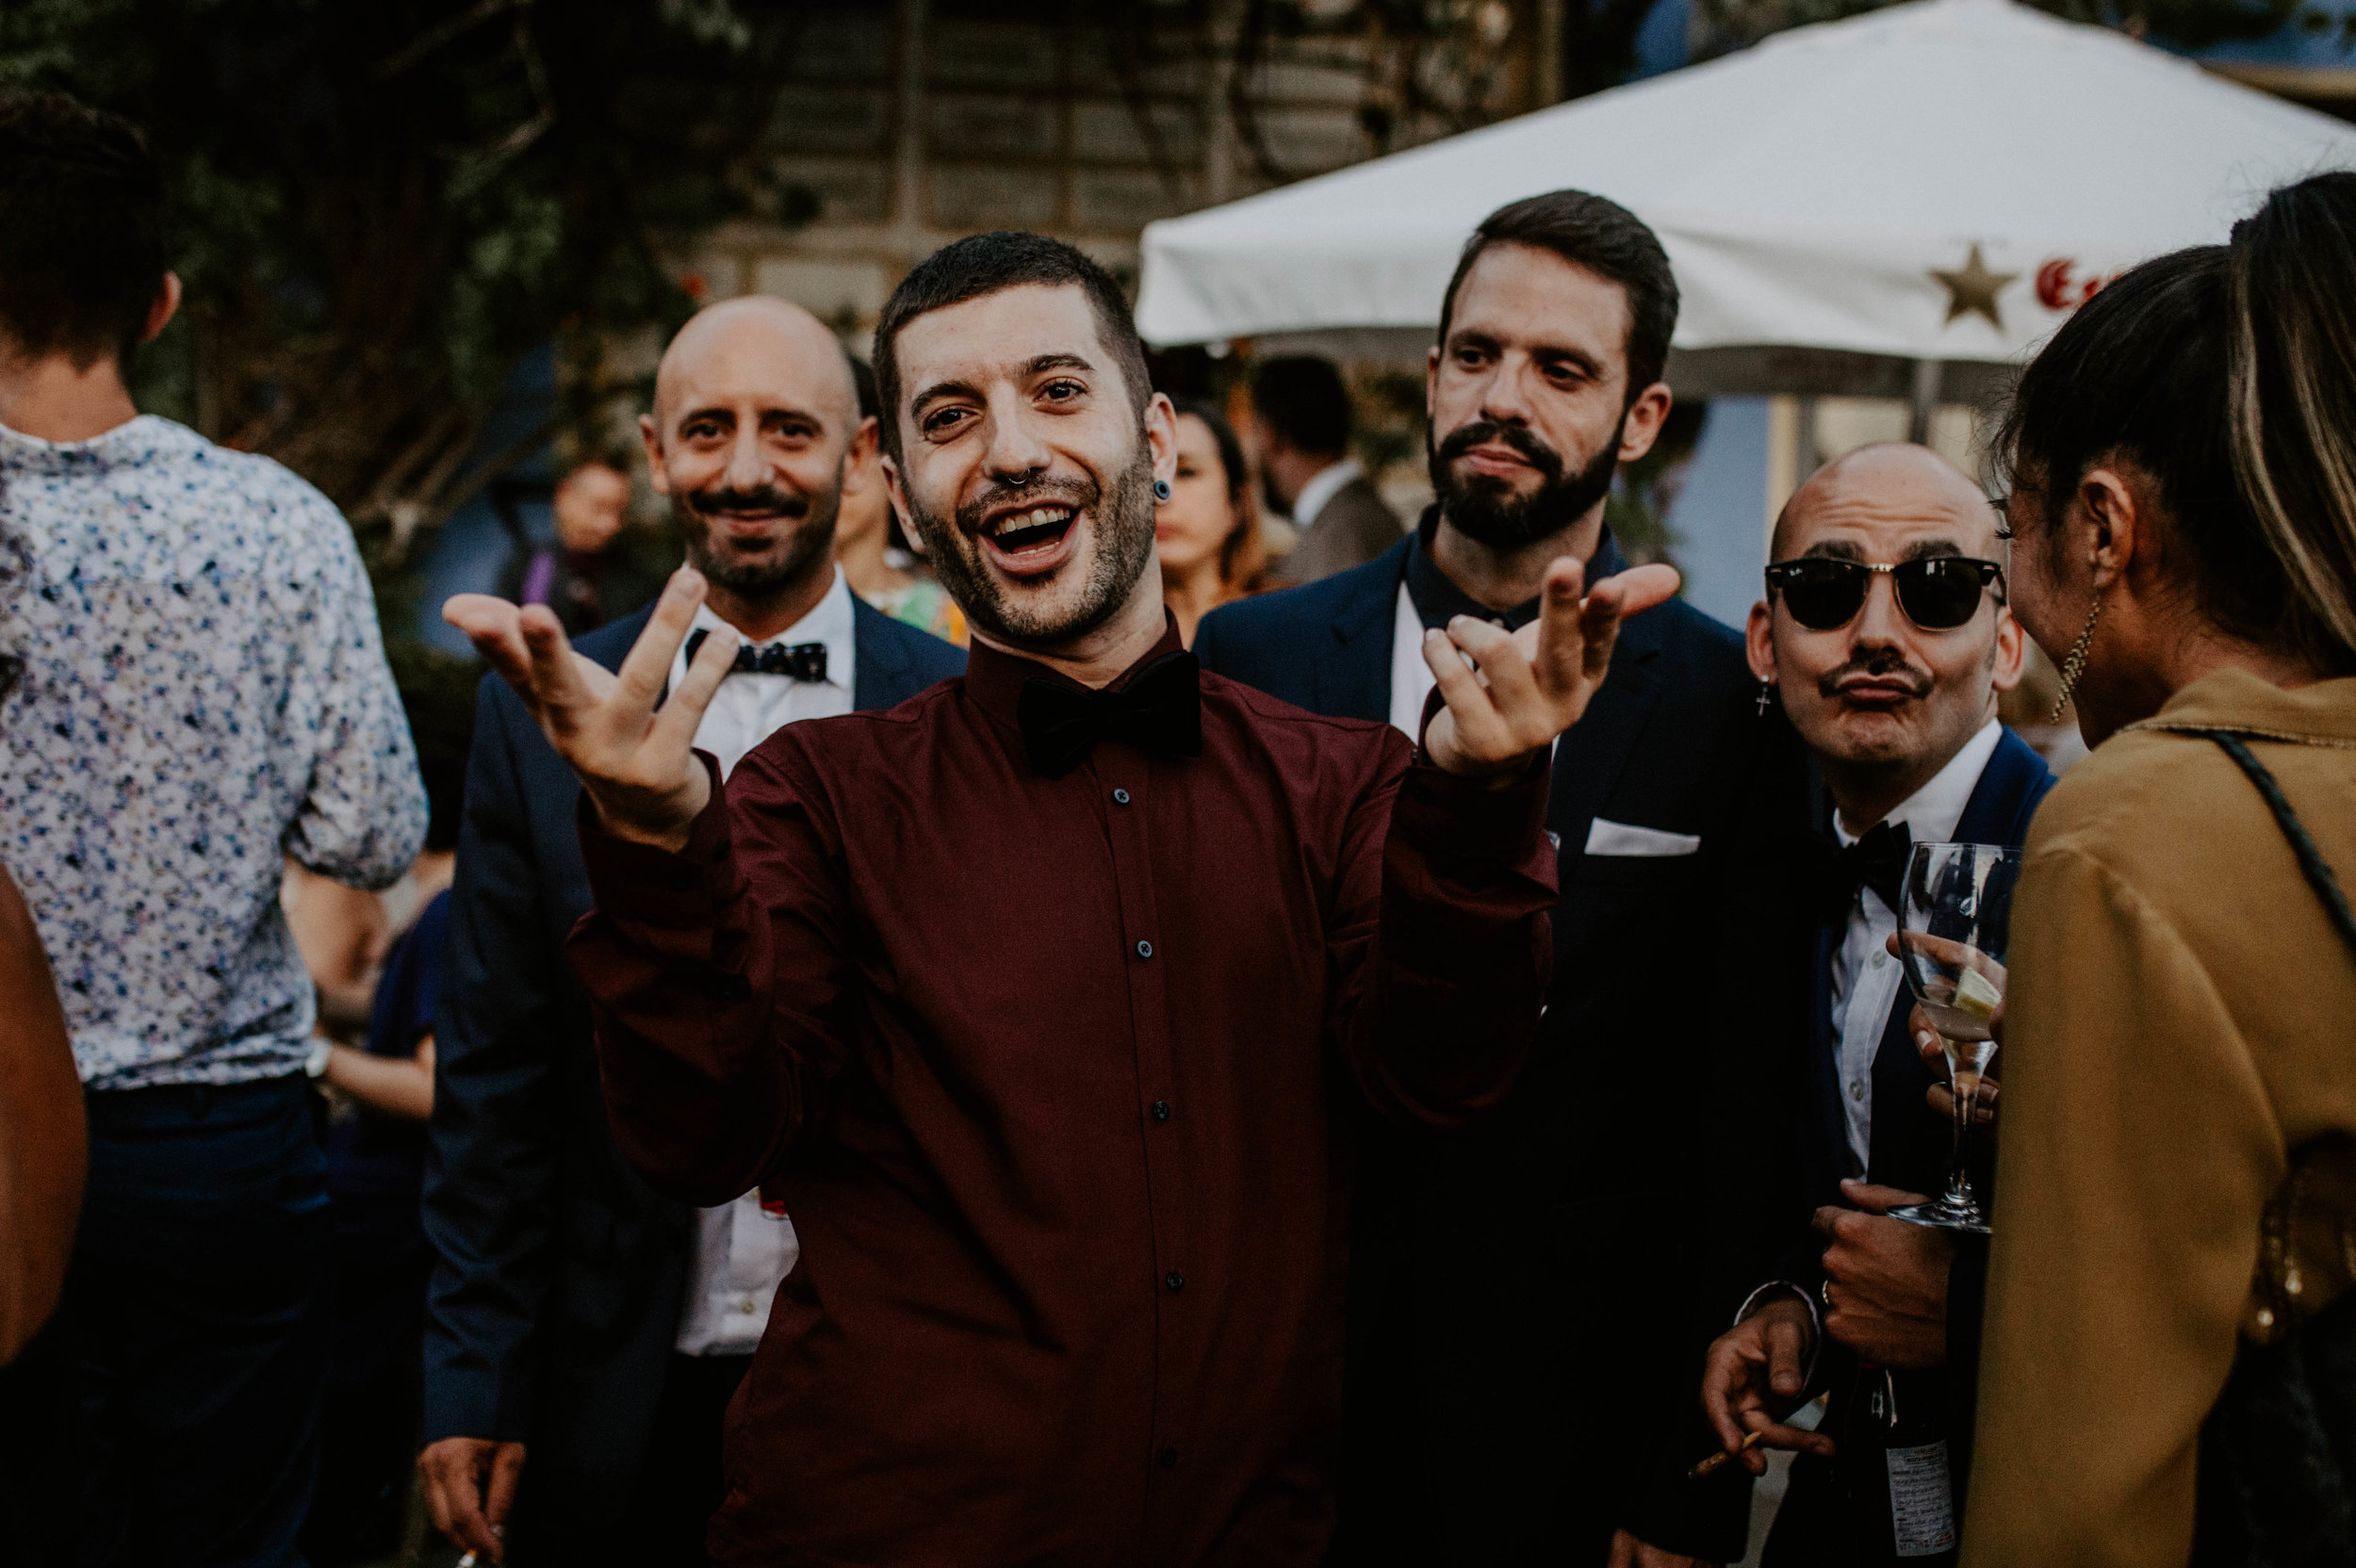 thenortherngirlphotography_bodasindustriales_bodasdiferentes_weddingphotographer_spanishphotographer_spanisgweddingphotographer_happyendings_mercantic_elsiglomercantic_antichrist_love_neon_weddingtattoo_CYNTHIAMANOLO-539.jpg